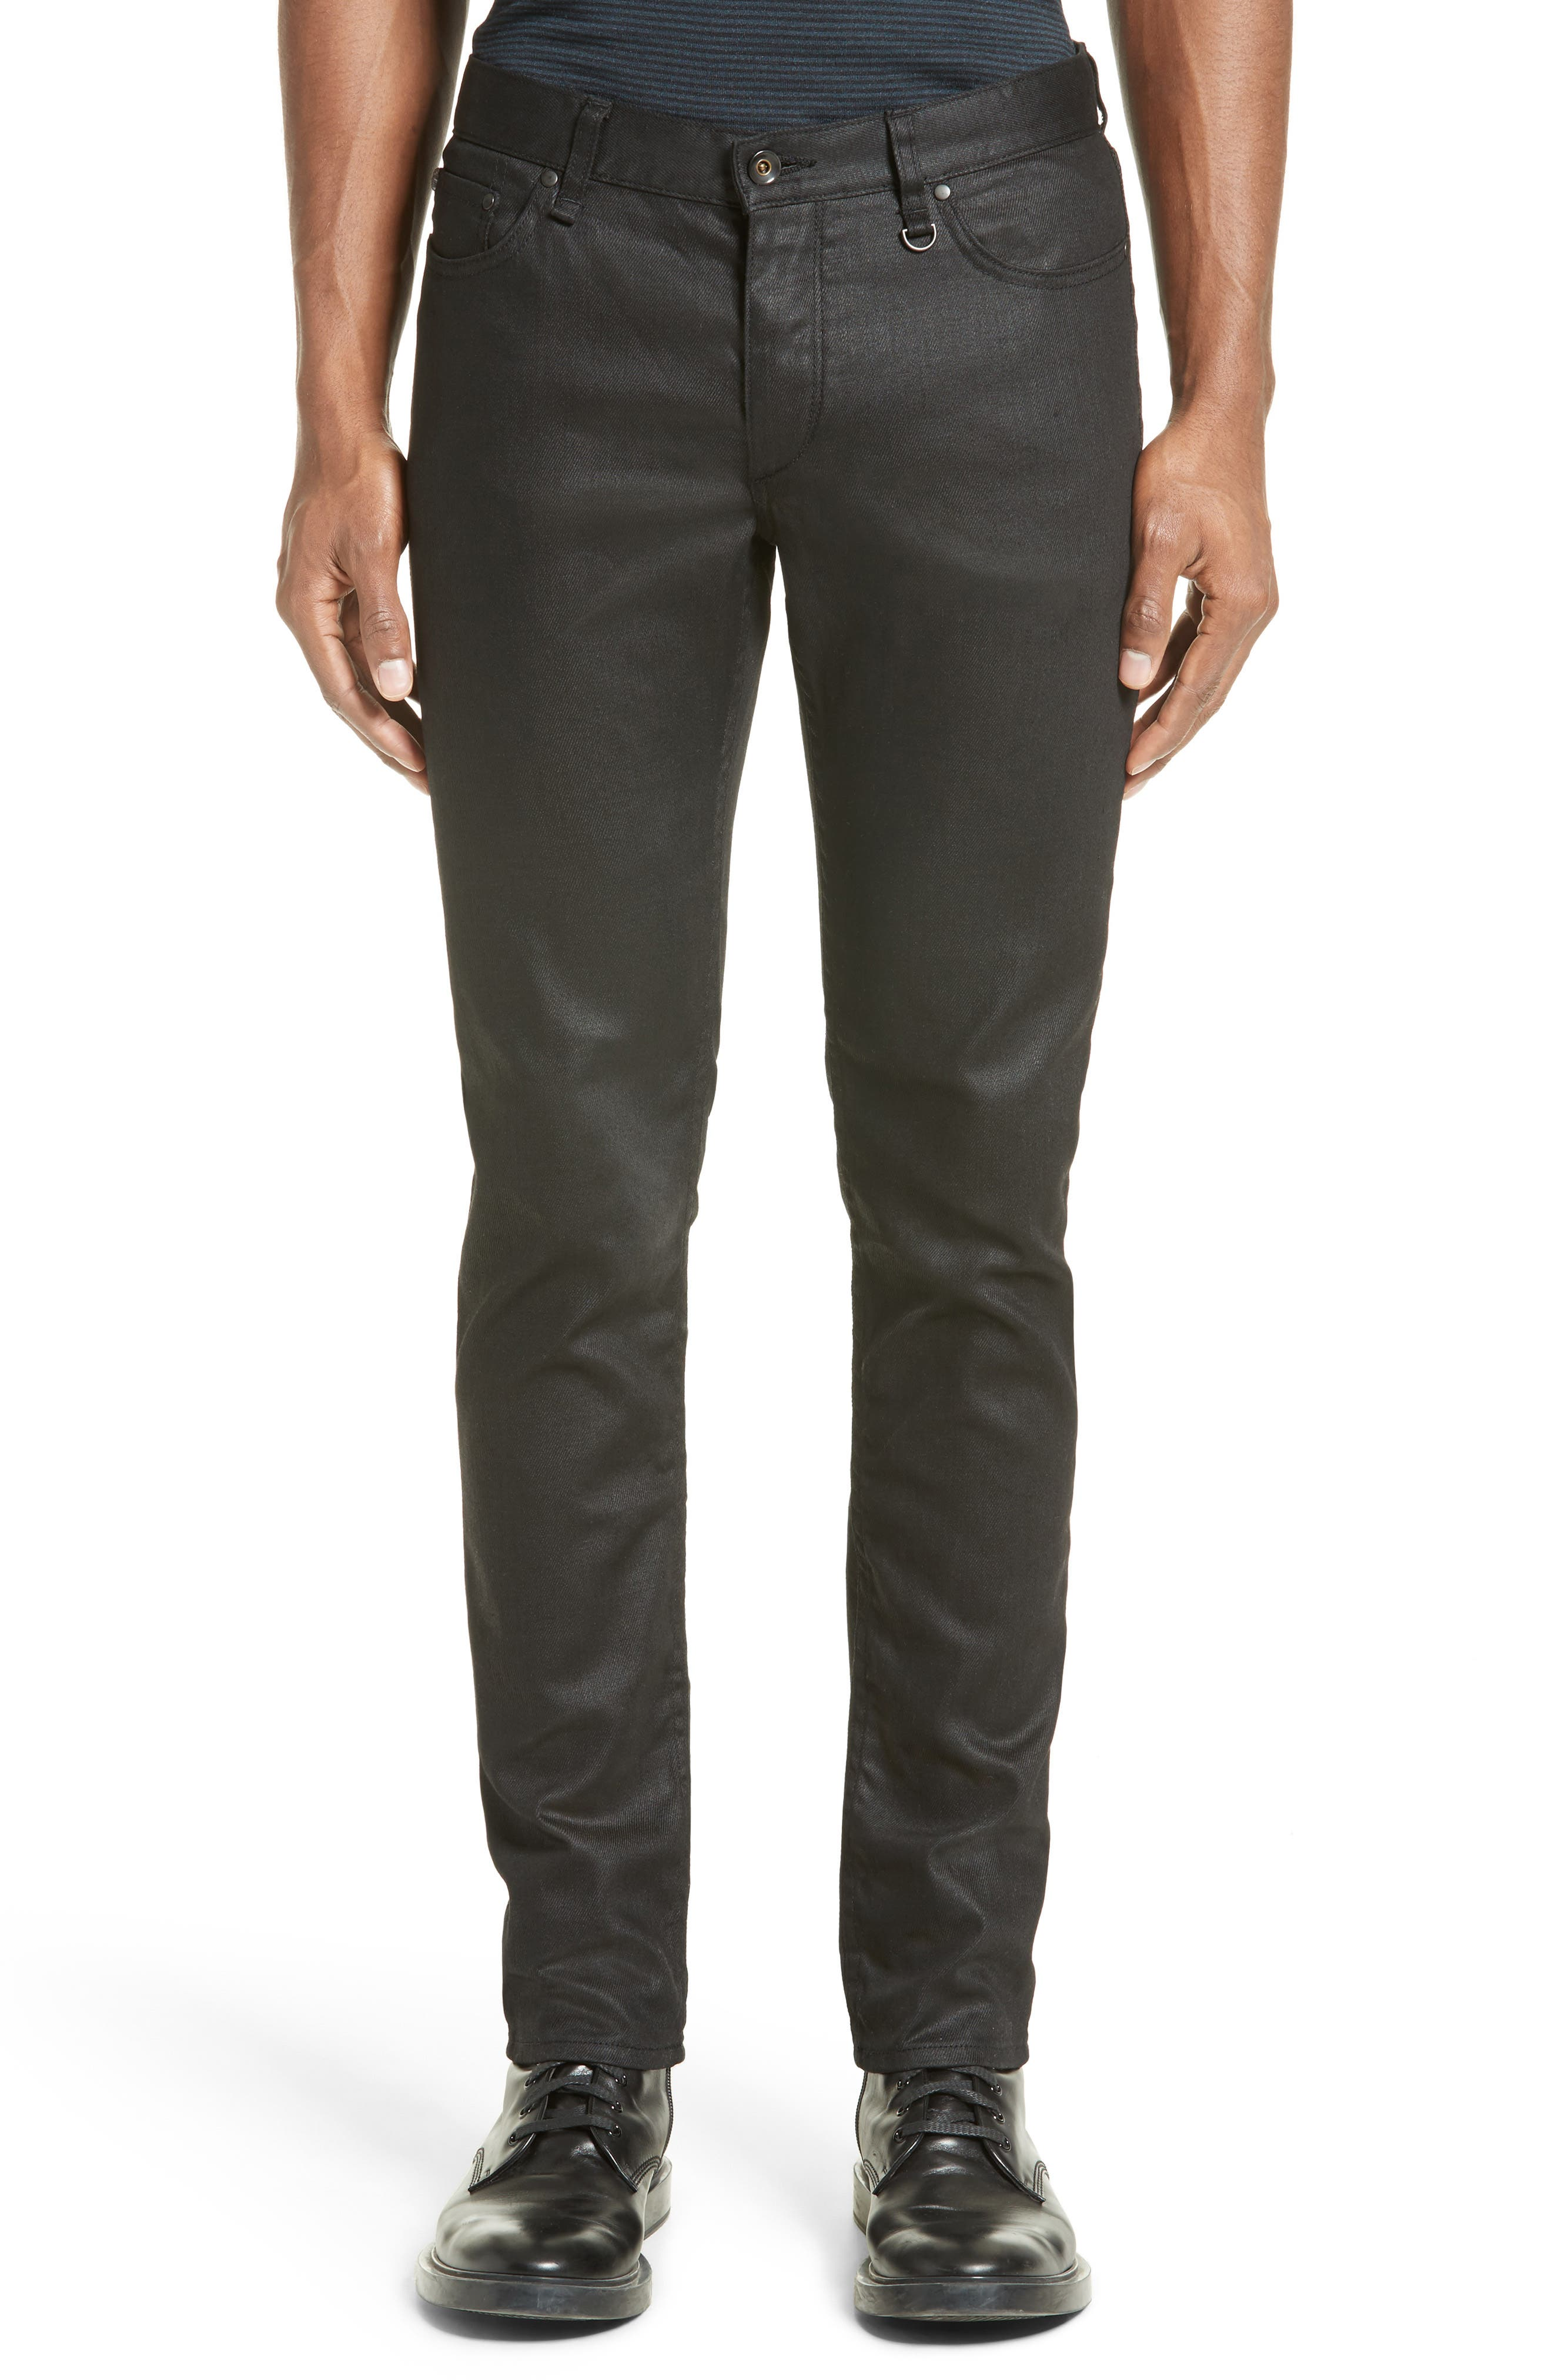 Collection Skinny Fit Coated Jeans,                         Main,                         color, Black